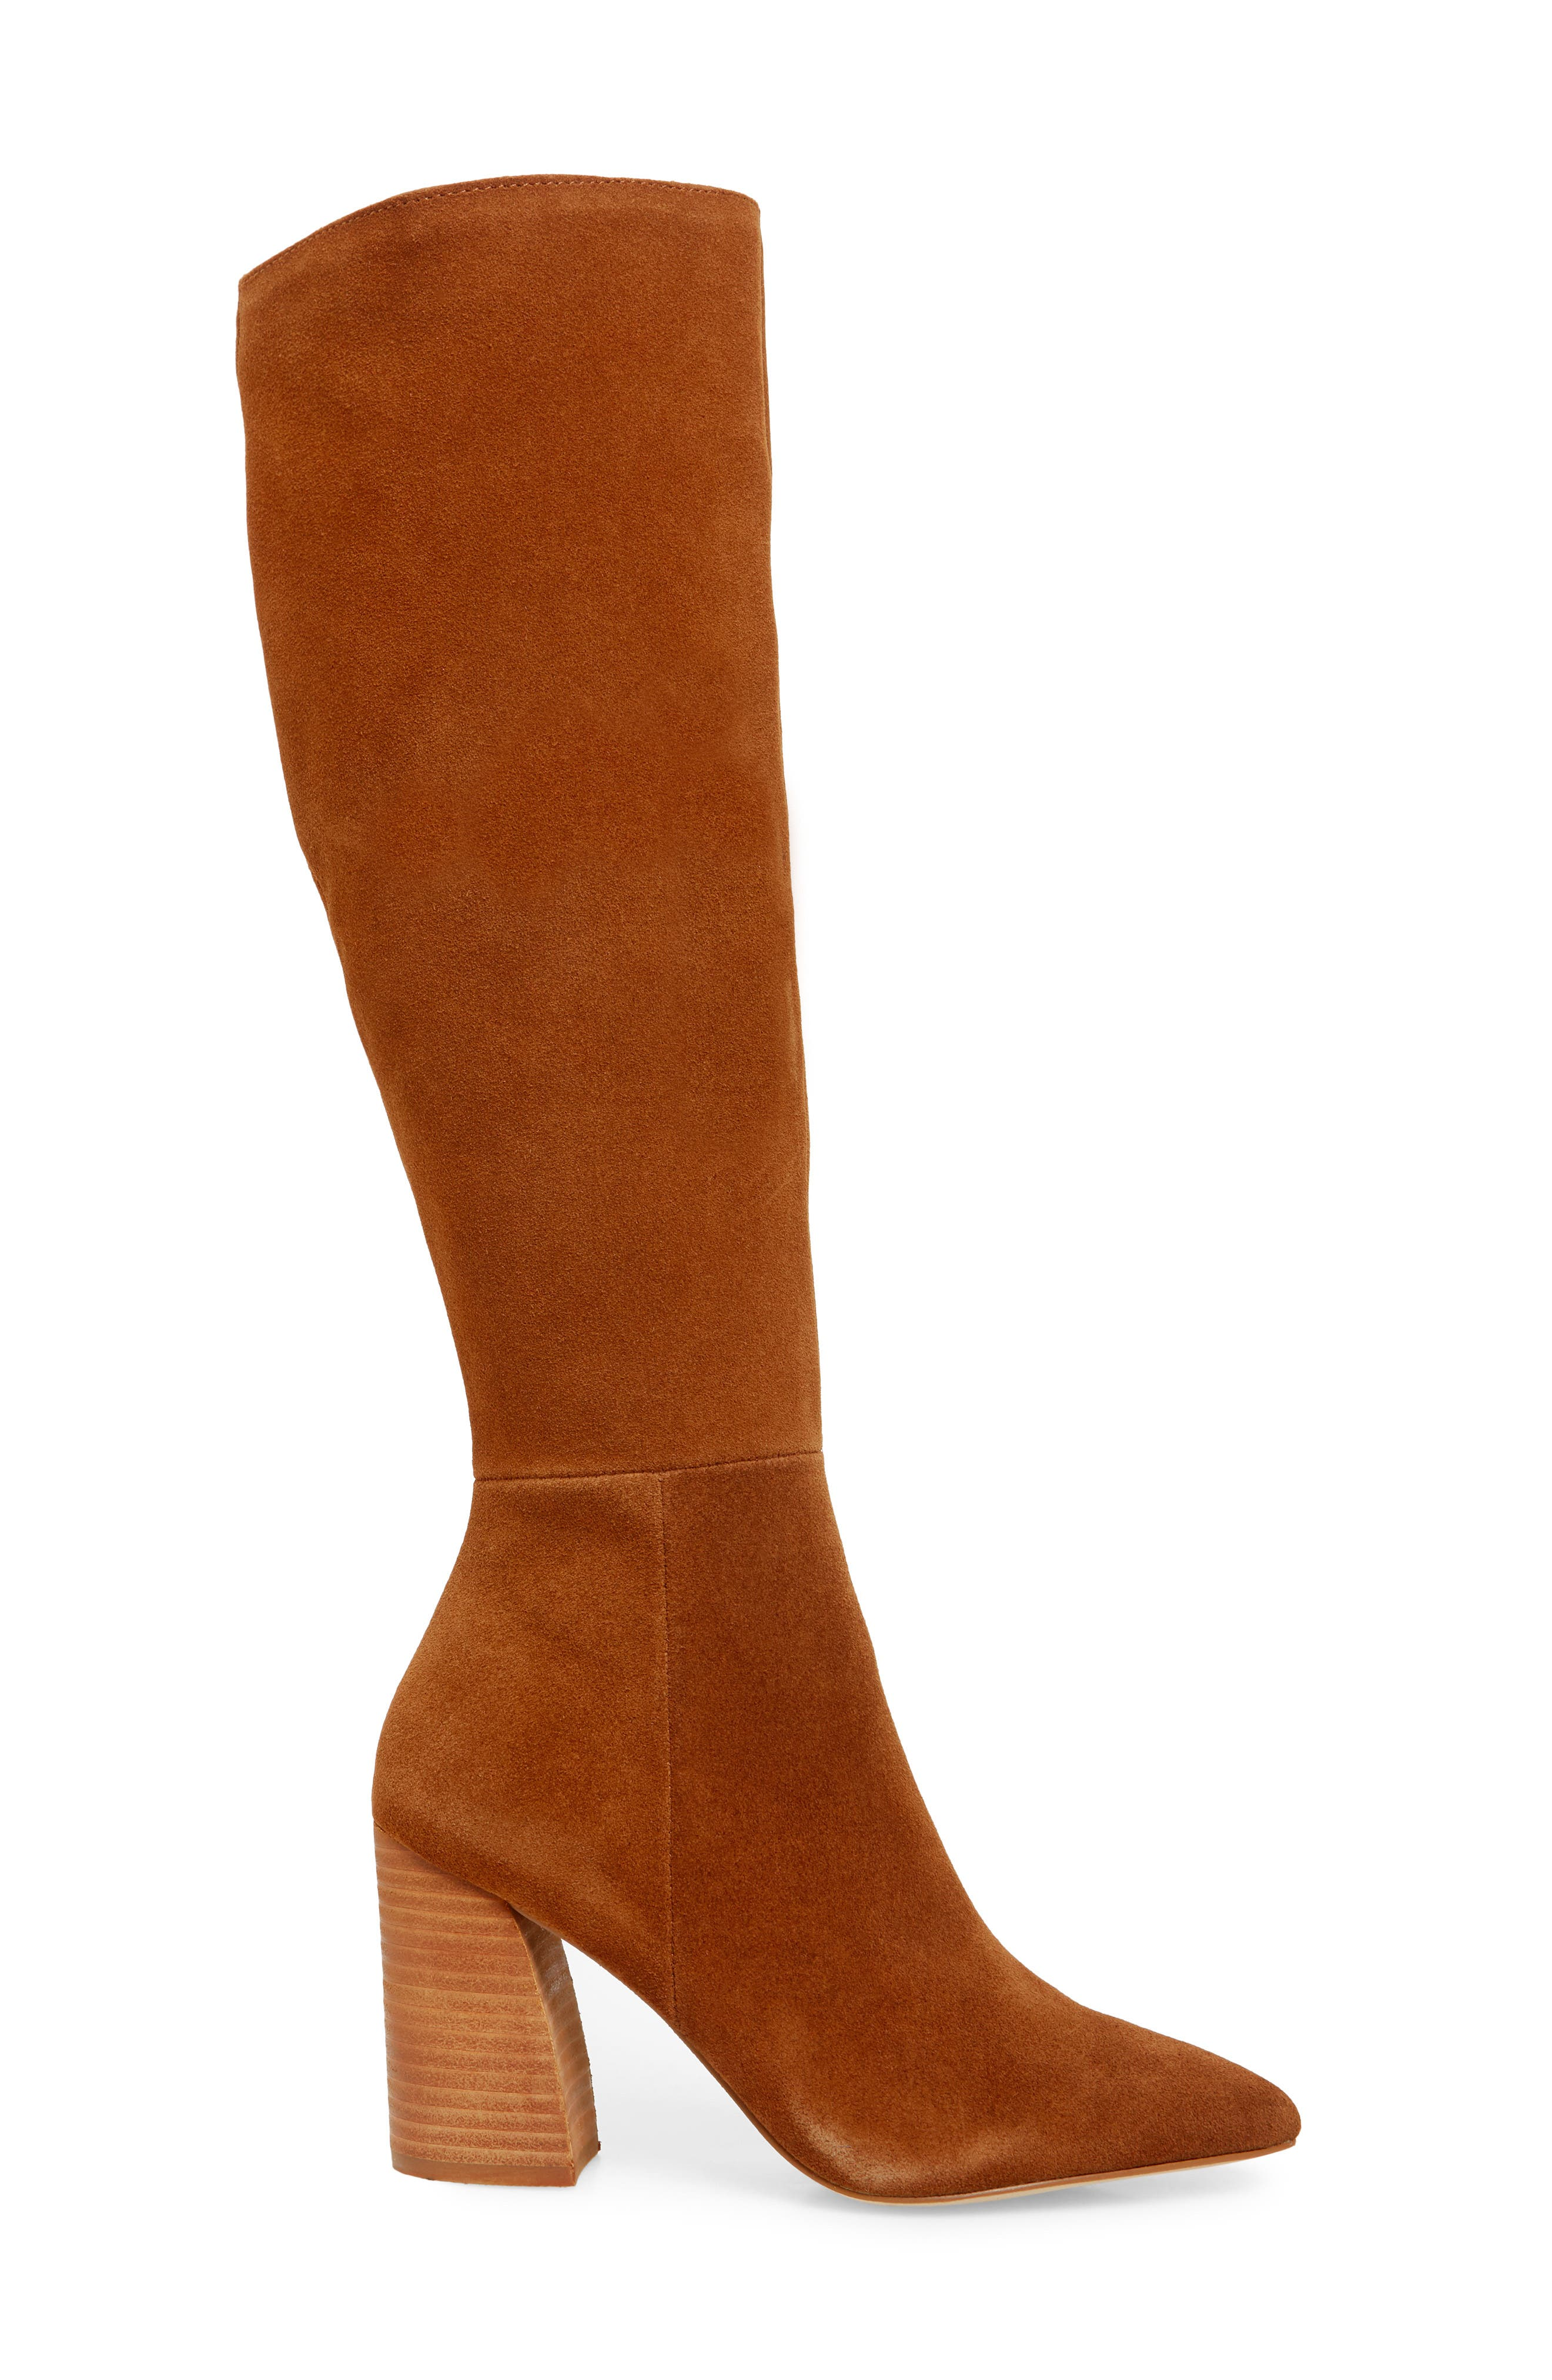 Serve Knee High Boot,                             Alternate thumbnail 3, color,                             CHESTNUT SUEDE